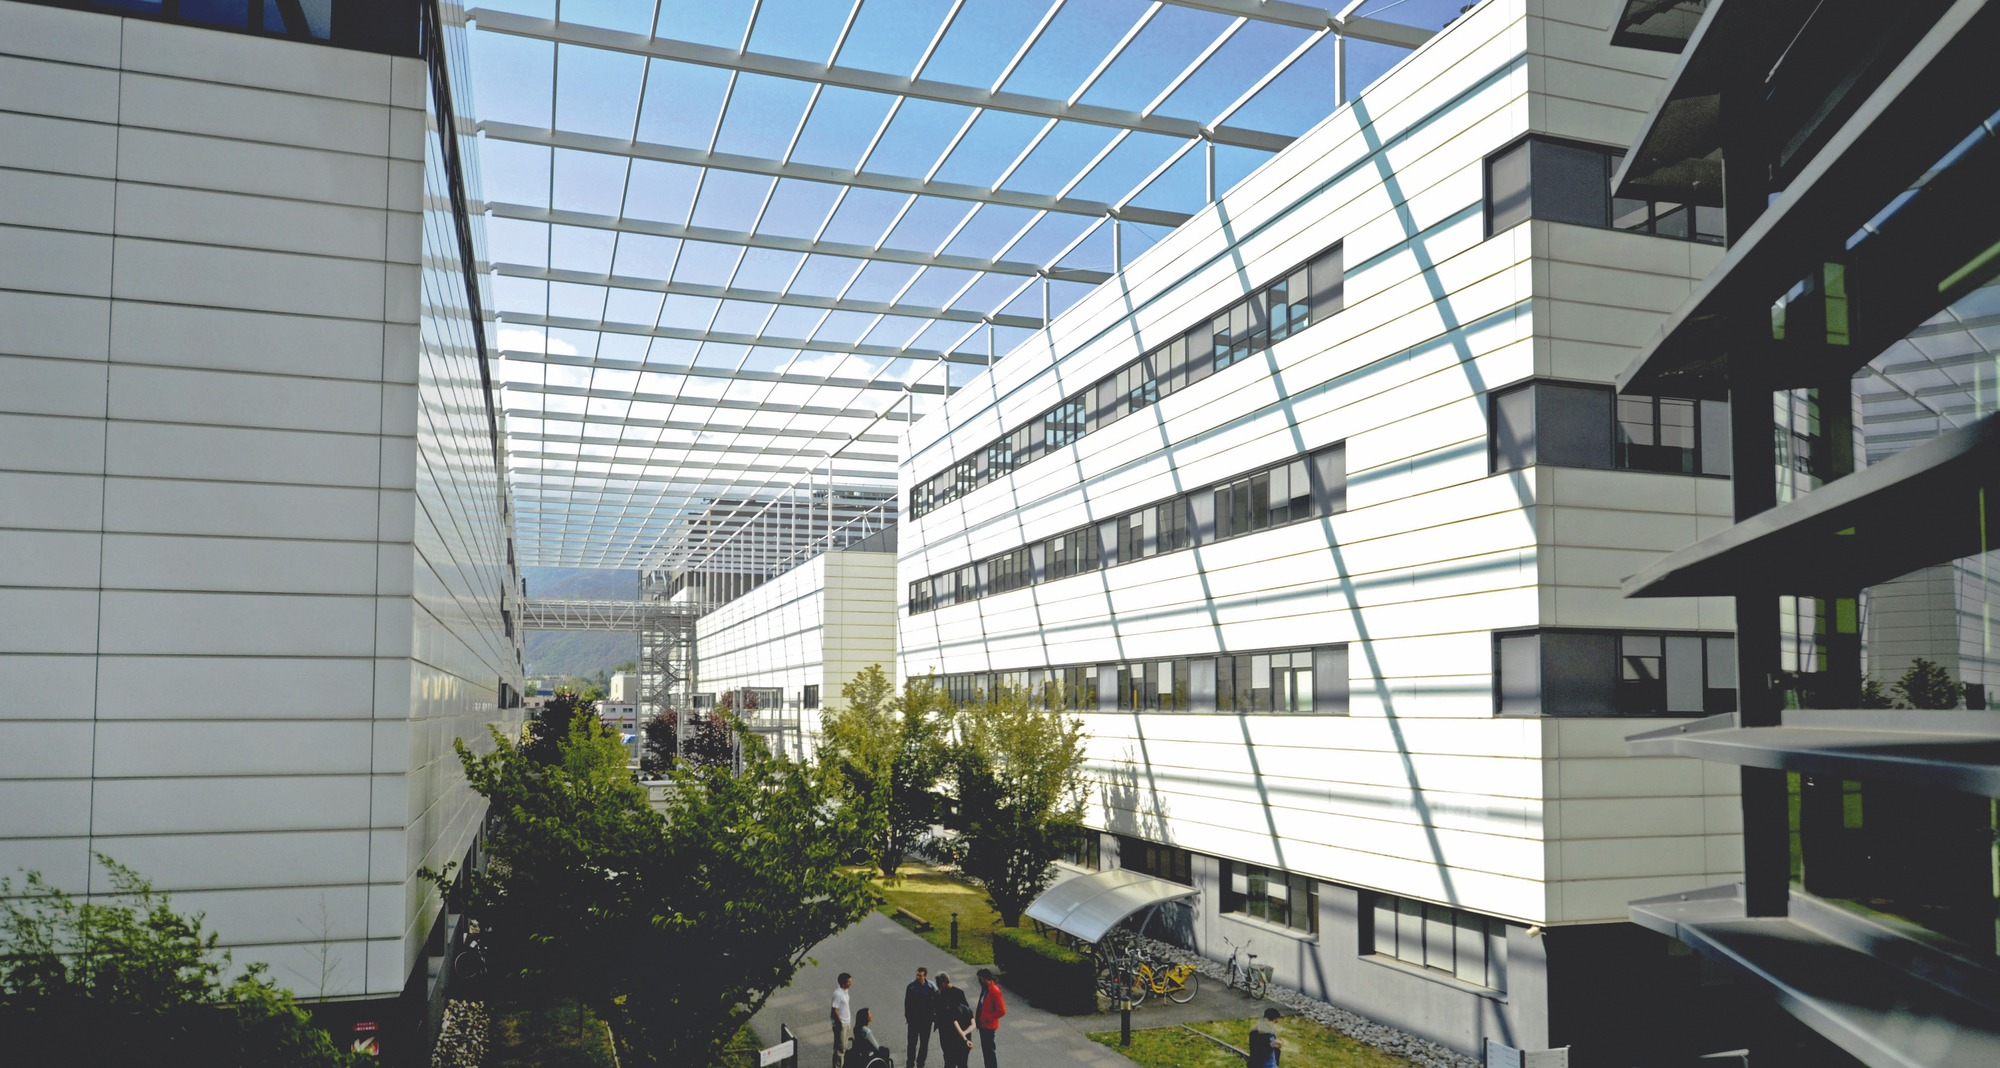 Campus Minatec à Grenoble